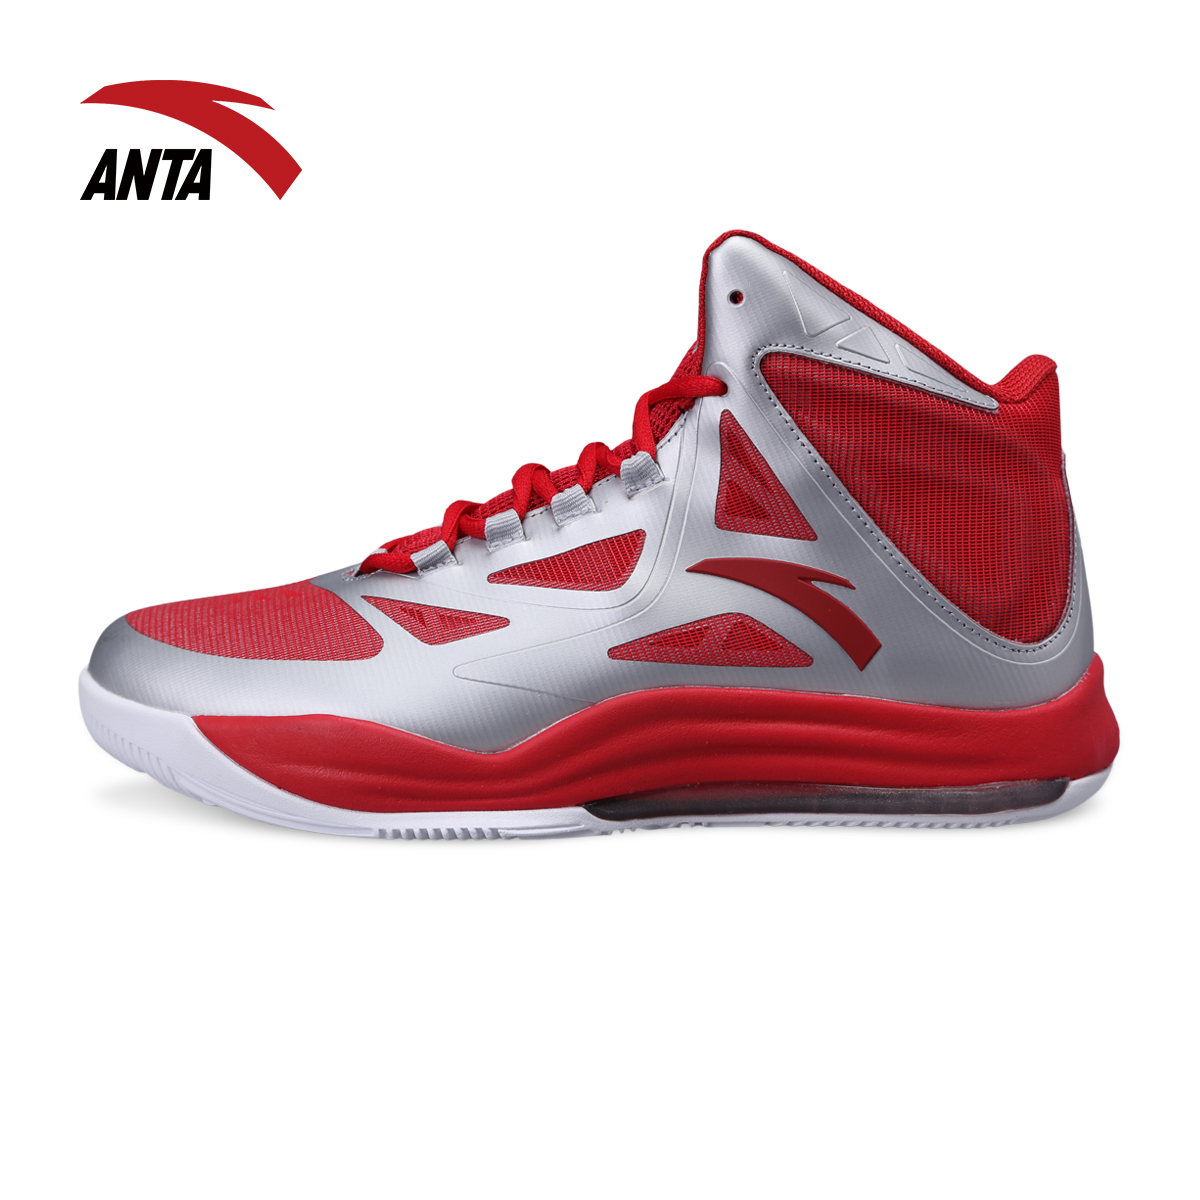 Anta basketball shoes men high shoes summer breathable men's basketball reeboks nba shoes wear and sports shoes basketball shoes